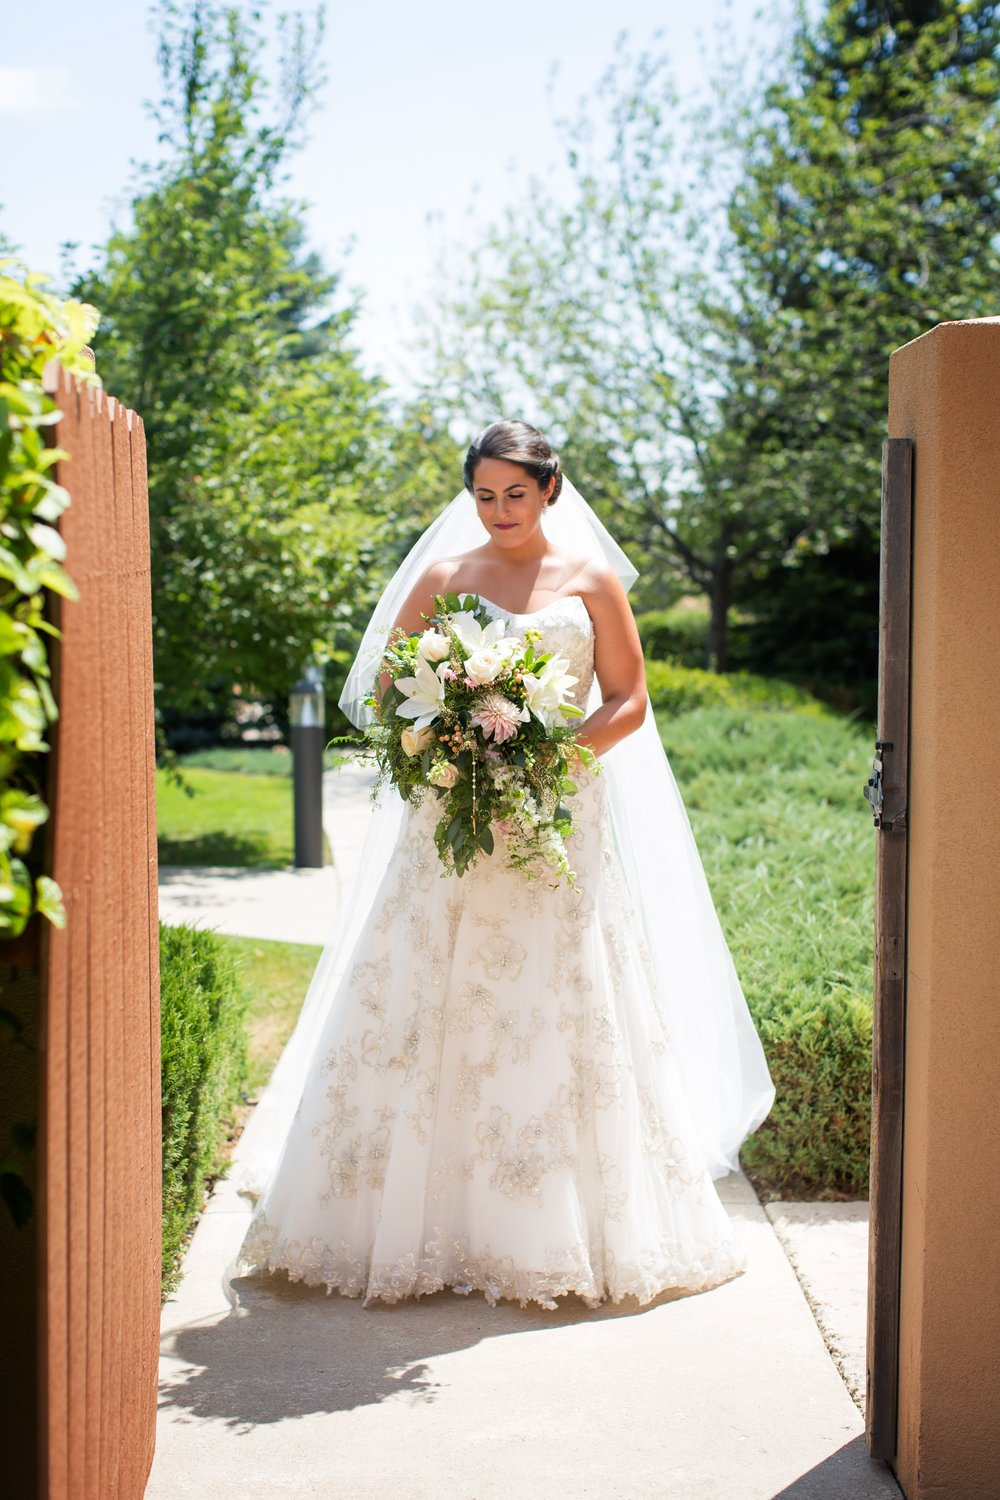 Our Brilliant Bride Natalie | Longmont, Colorado Summer Wedding. Desktop Image